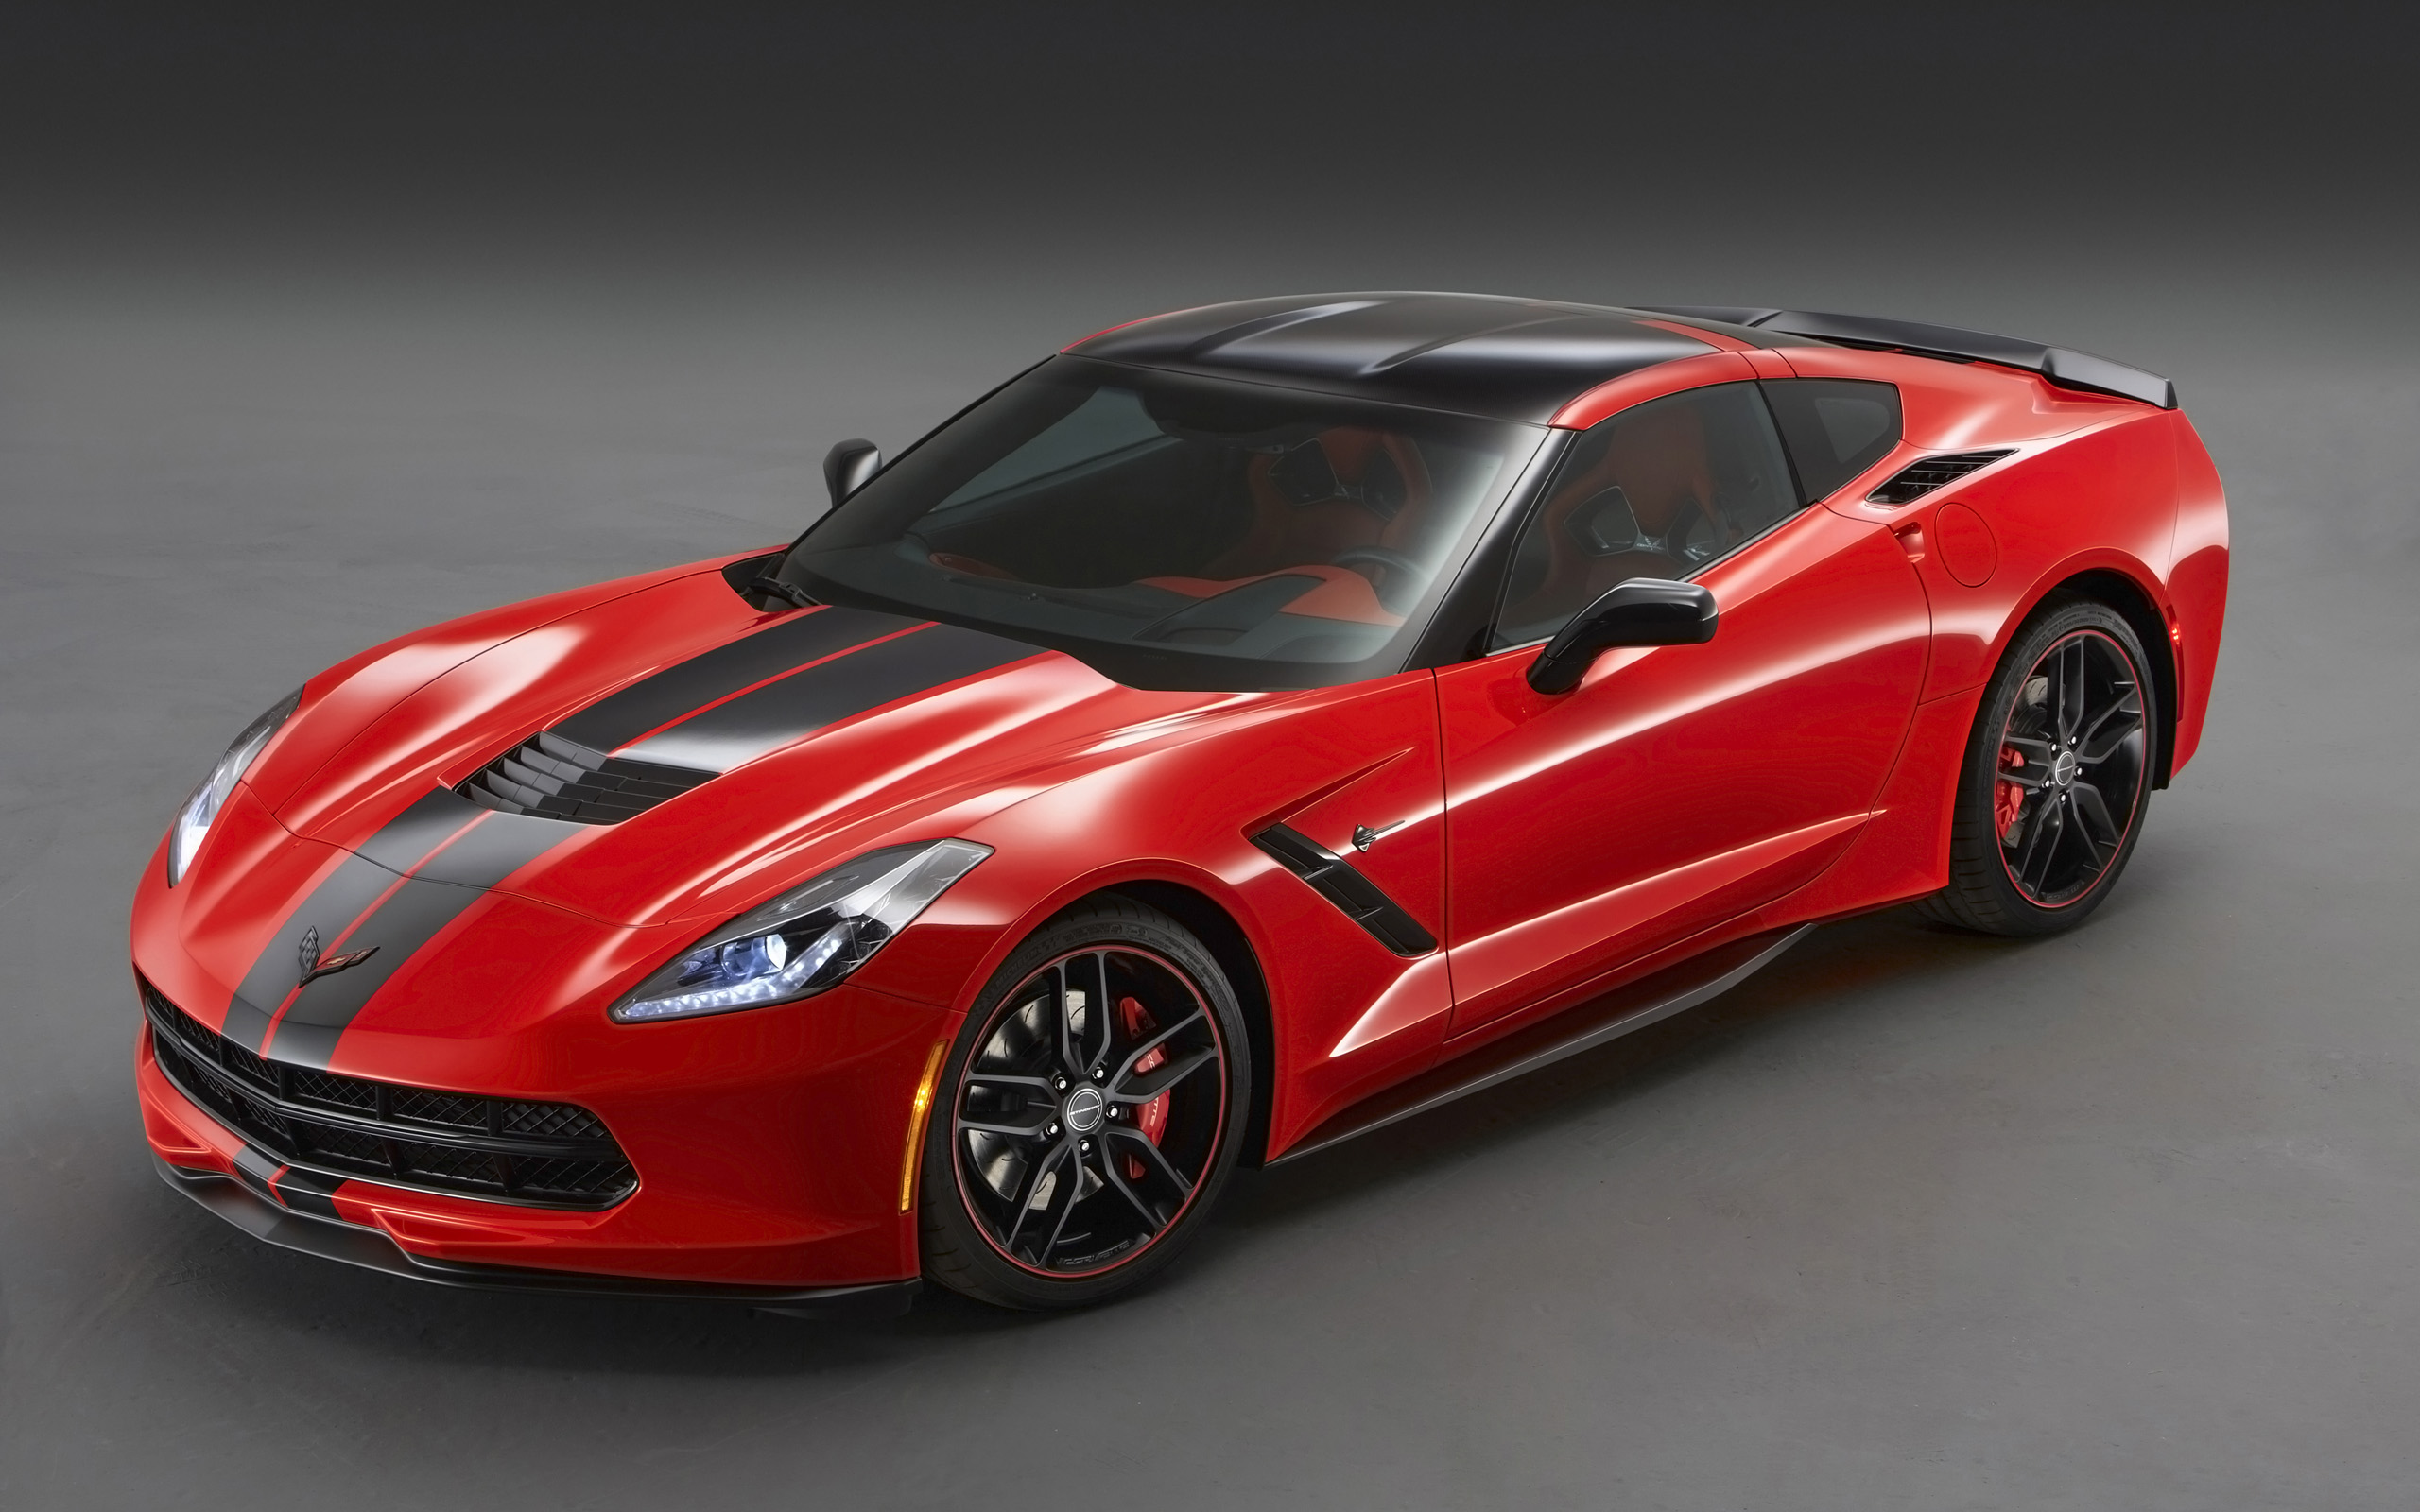 2013 chevrolet corvette concepts sema pacific wallpaper hd car. Cars Review. Best American Auto & Cars Review